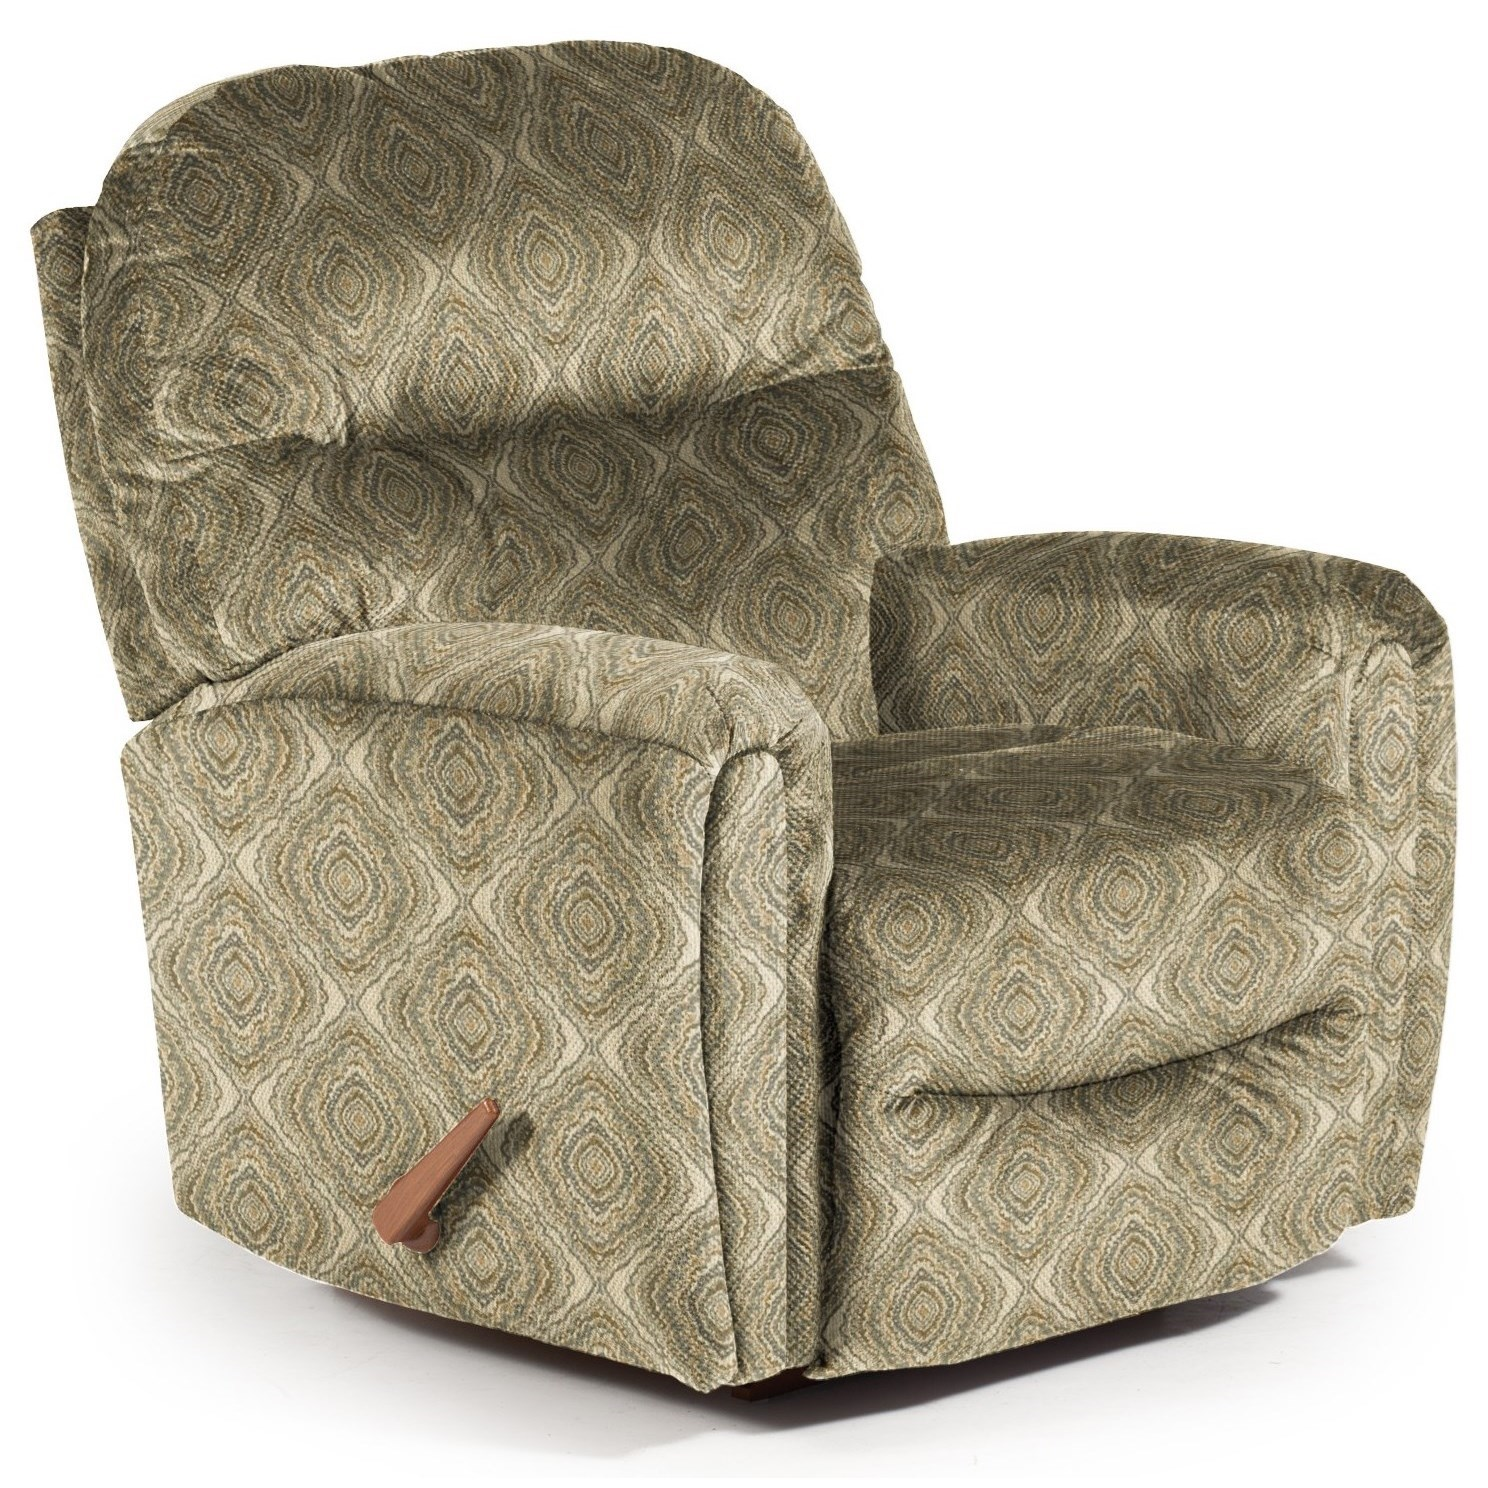 Best Home Furnishings Recliners - Medium Markson Space Saver Recliner - Item Number: 110599587-34569